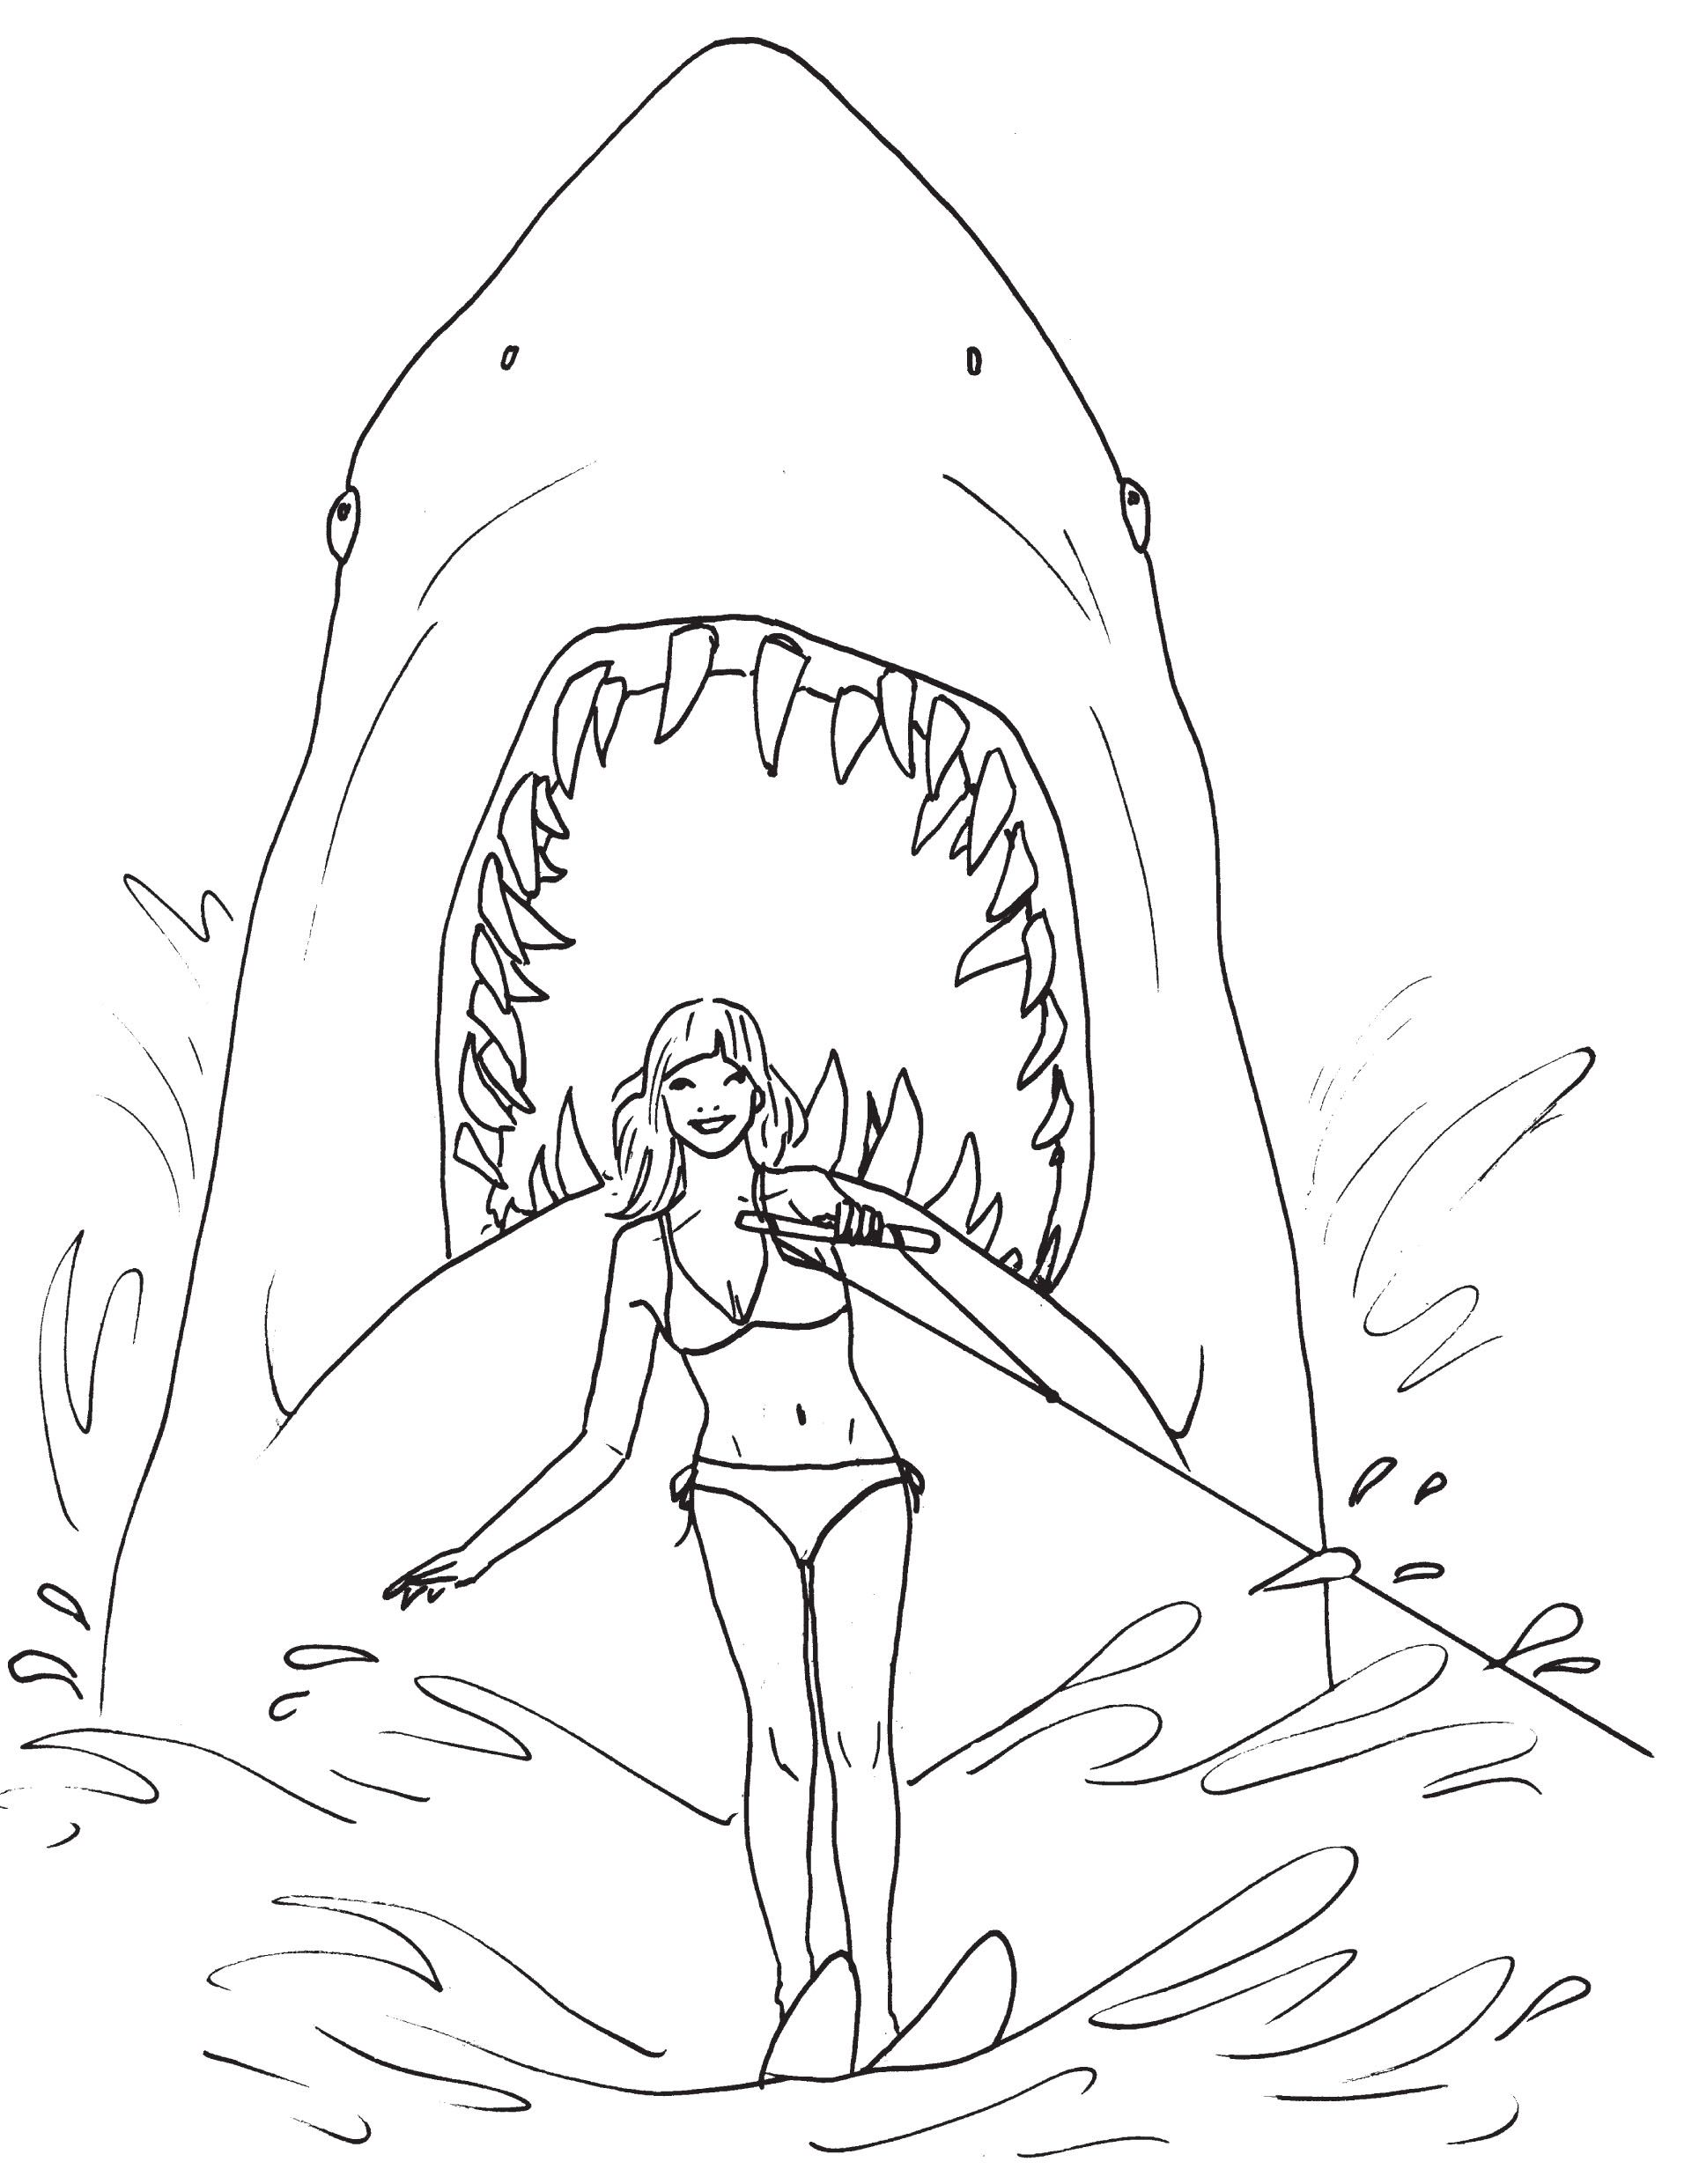 Fantastic Great White Shark Coloring Page